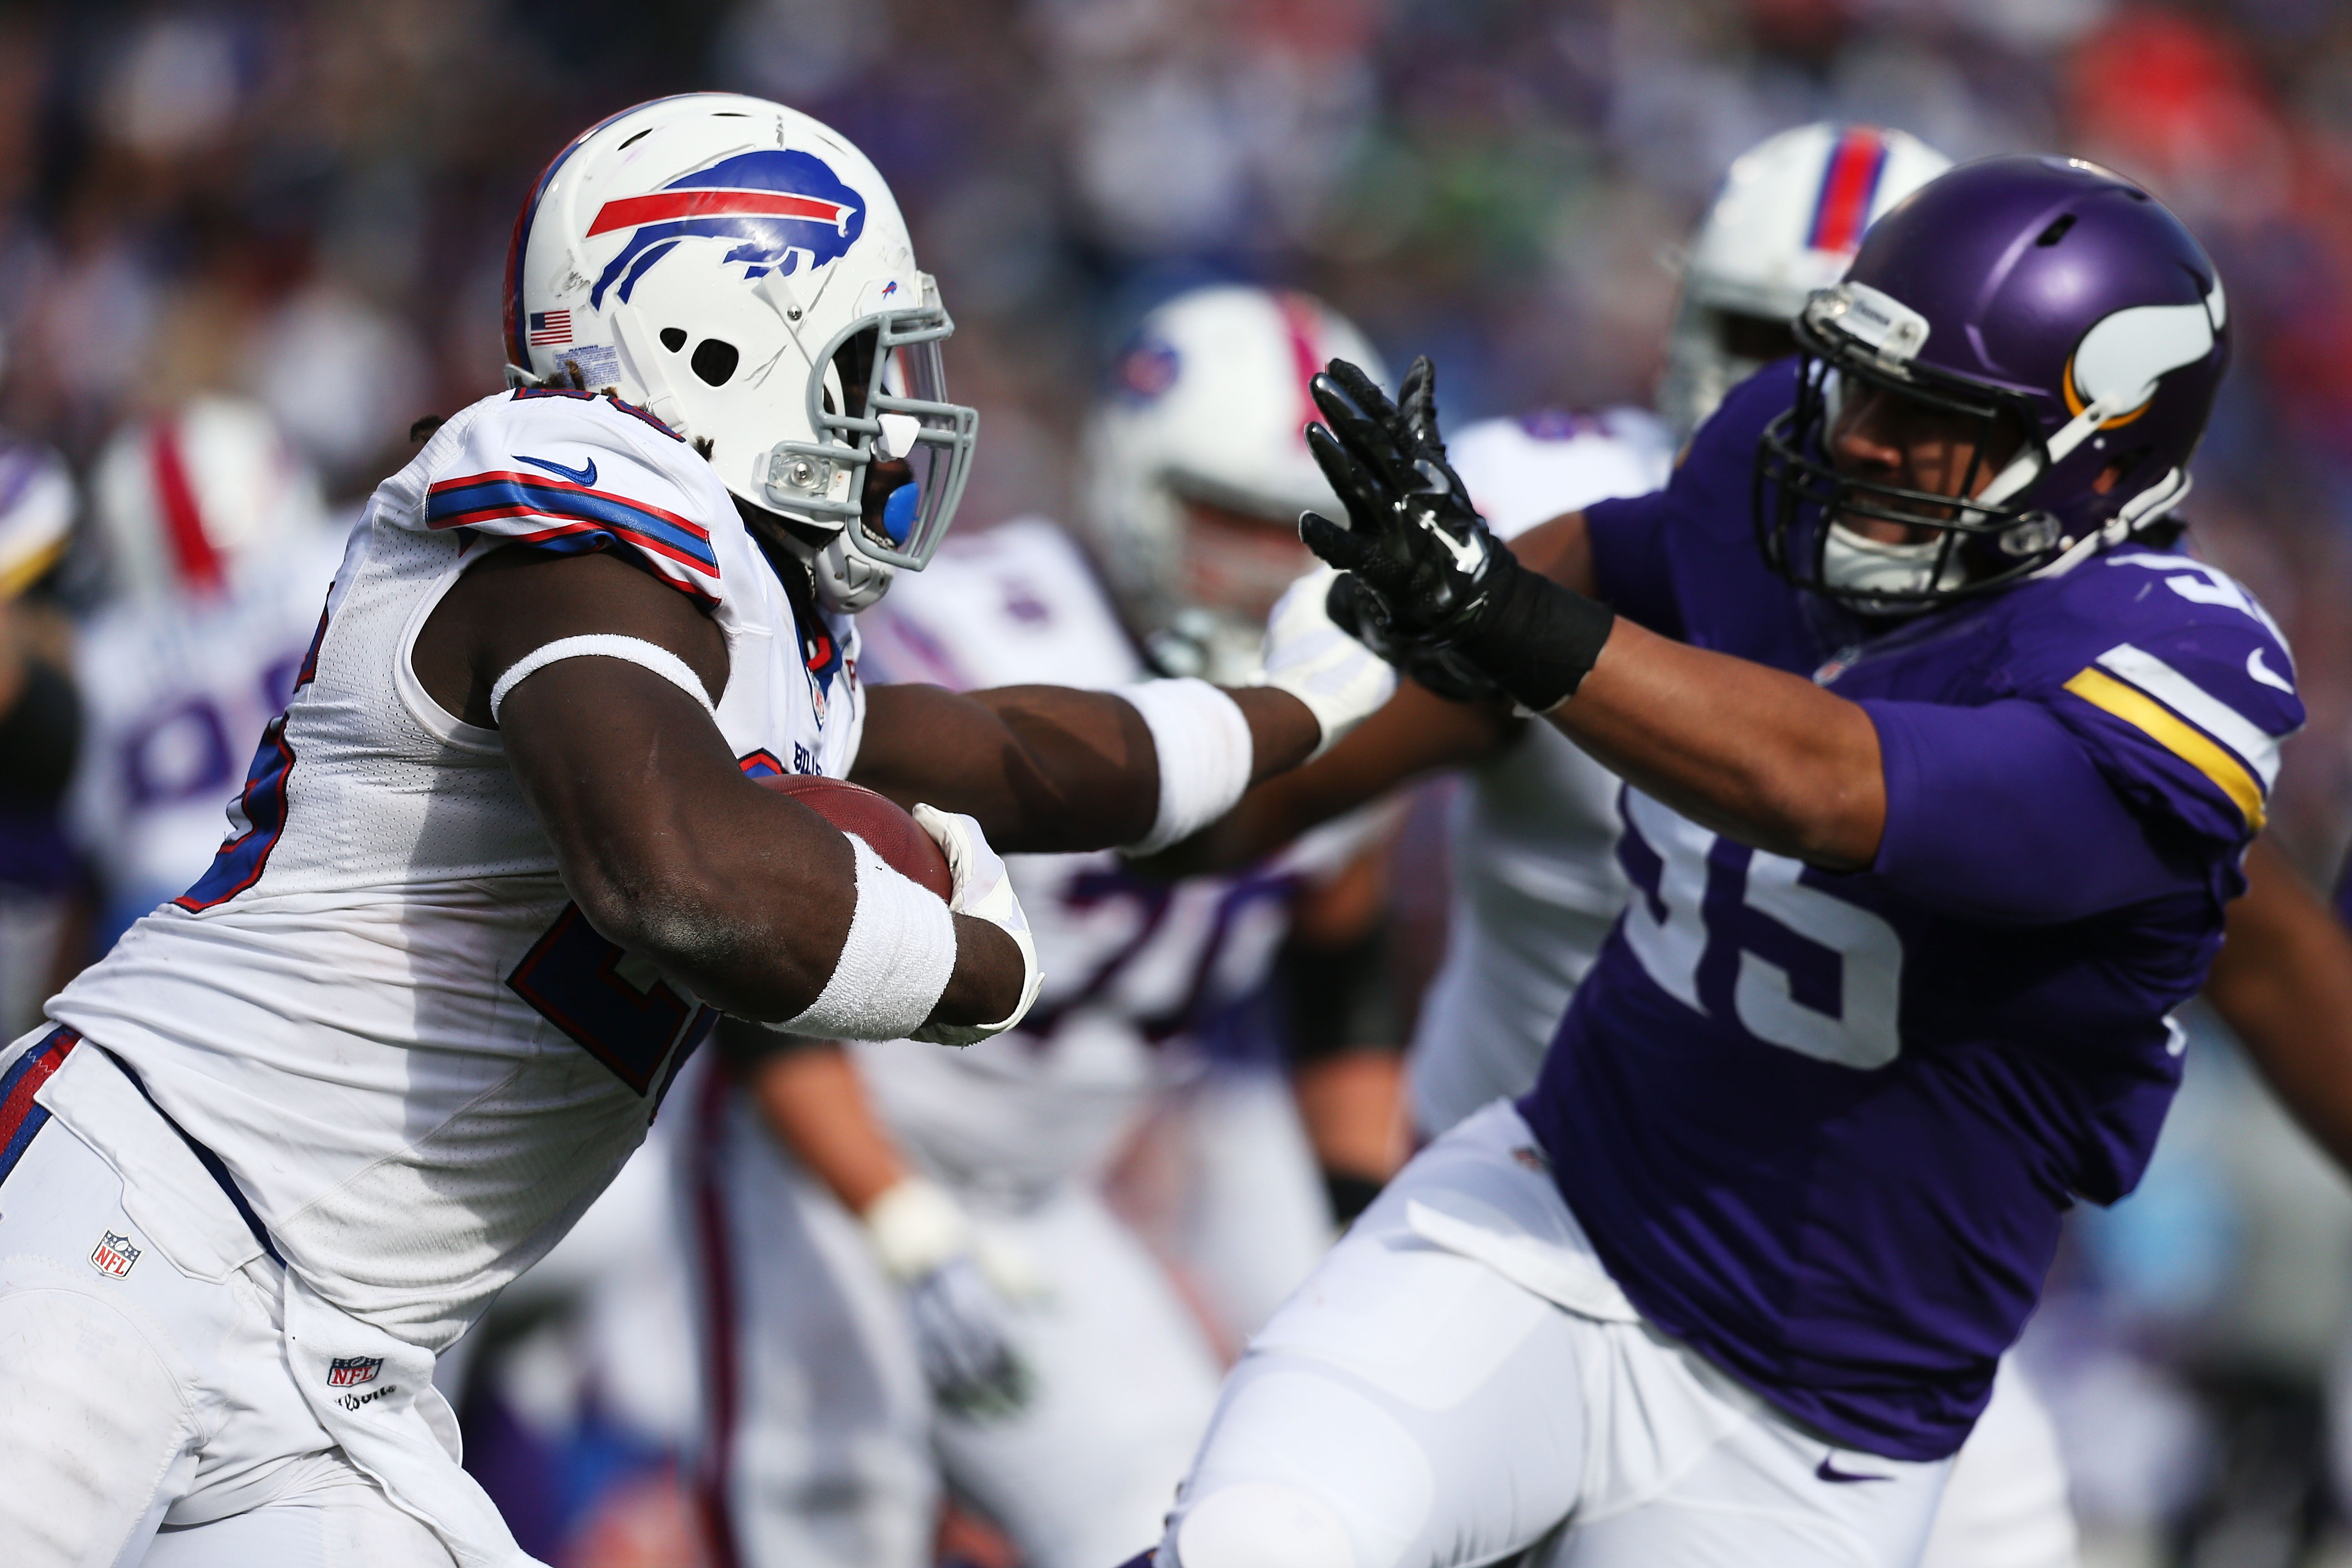 Former Vikings defensive end Scott Crichton, right, gets stiff-armed by former Bills running back Boobie Dixon in a game in 2014. (Photo by Brett Carlsen/Getty Images)